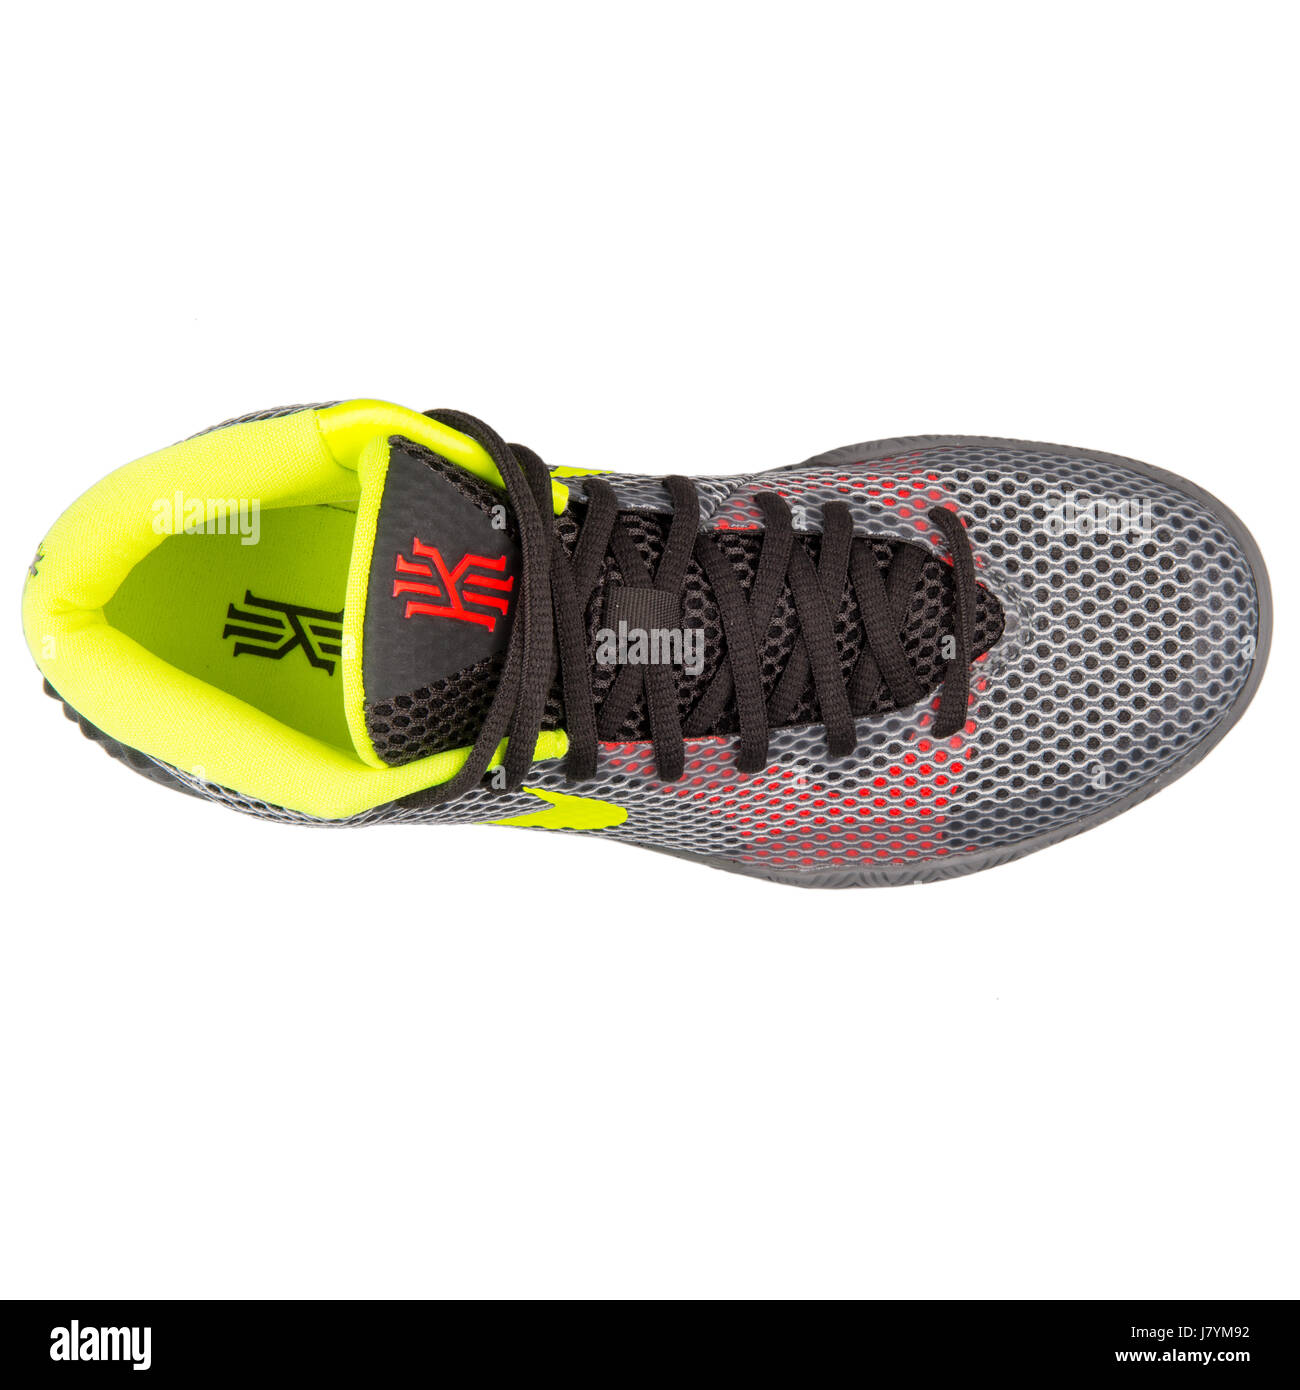 cd1a735666c Nike Kyrie 1 Men s Grey Basketball Sneakers - 705277-270 Stock Photo ...